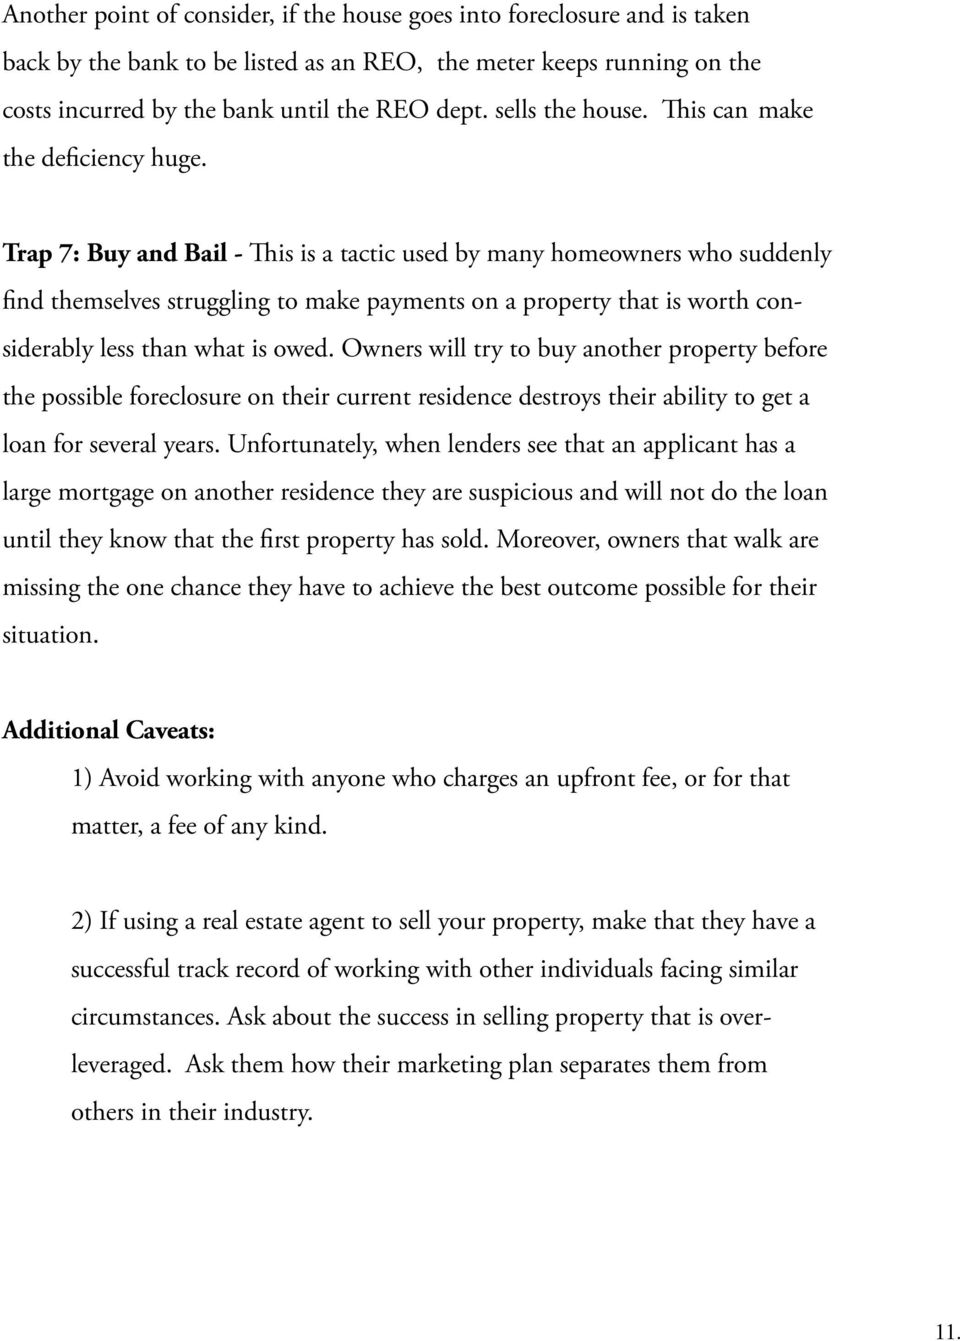 Trap 7: Buy and Bail - This is a tactic used by many homeowners who suddenly find themselves struggling to make payments on a property that is worth considerably less than what is owed.